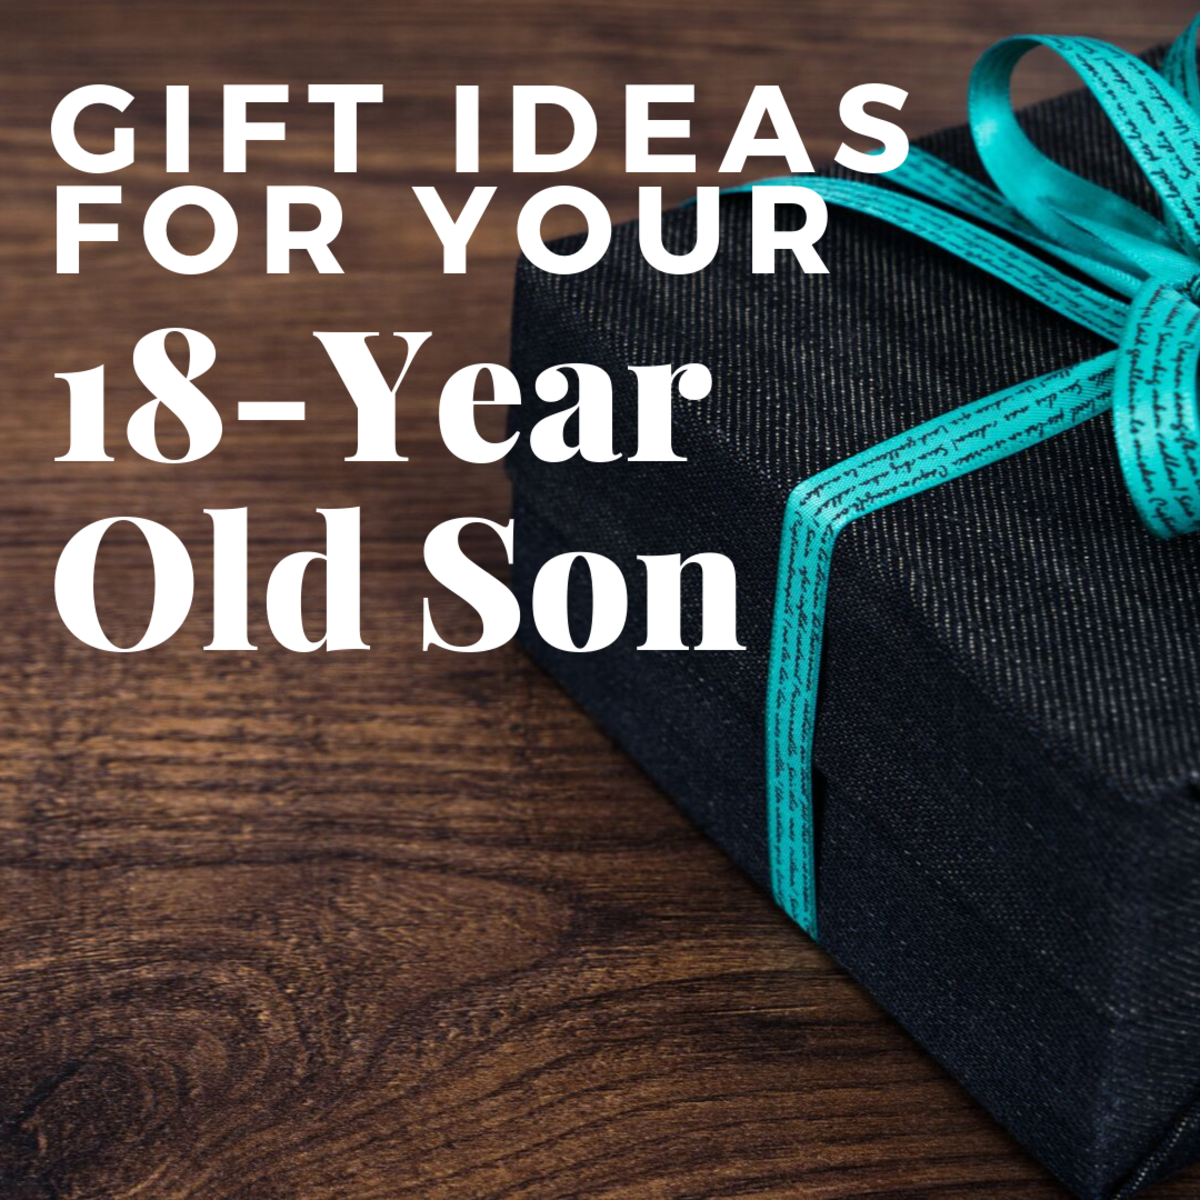 Gift Ideas for Your 18-Year-Old Son